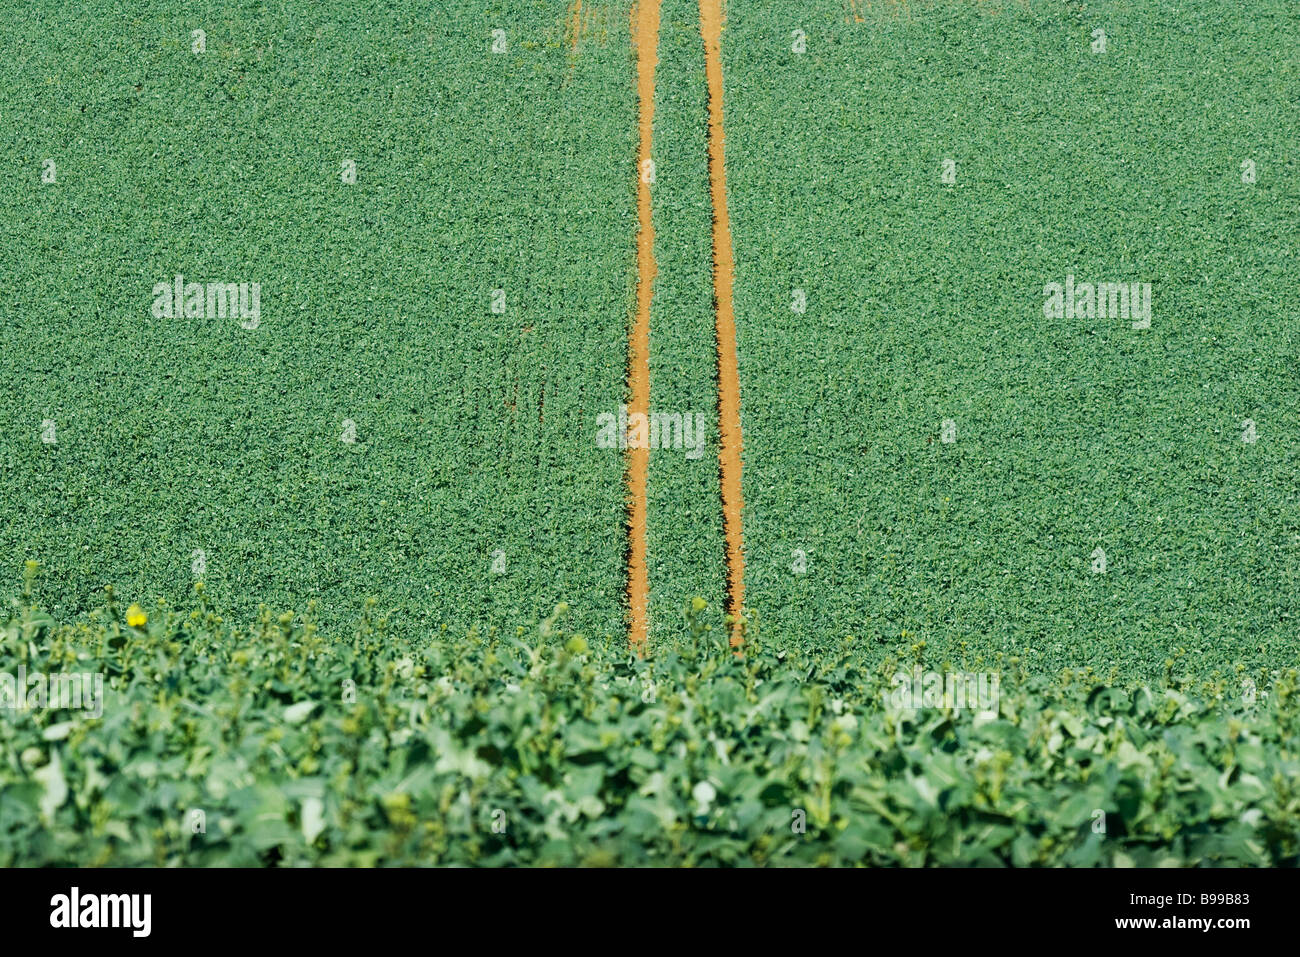 Tire tracks in cultivated field, high angle view - Stock Image